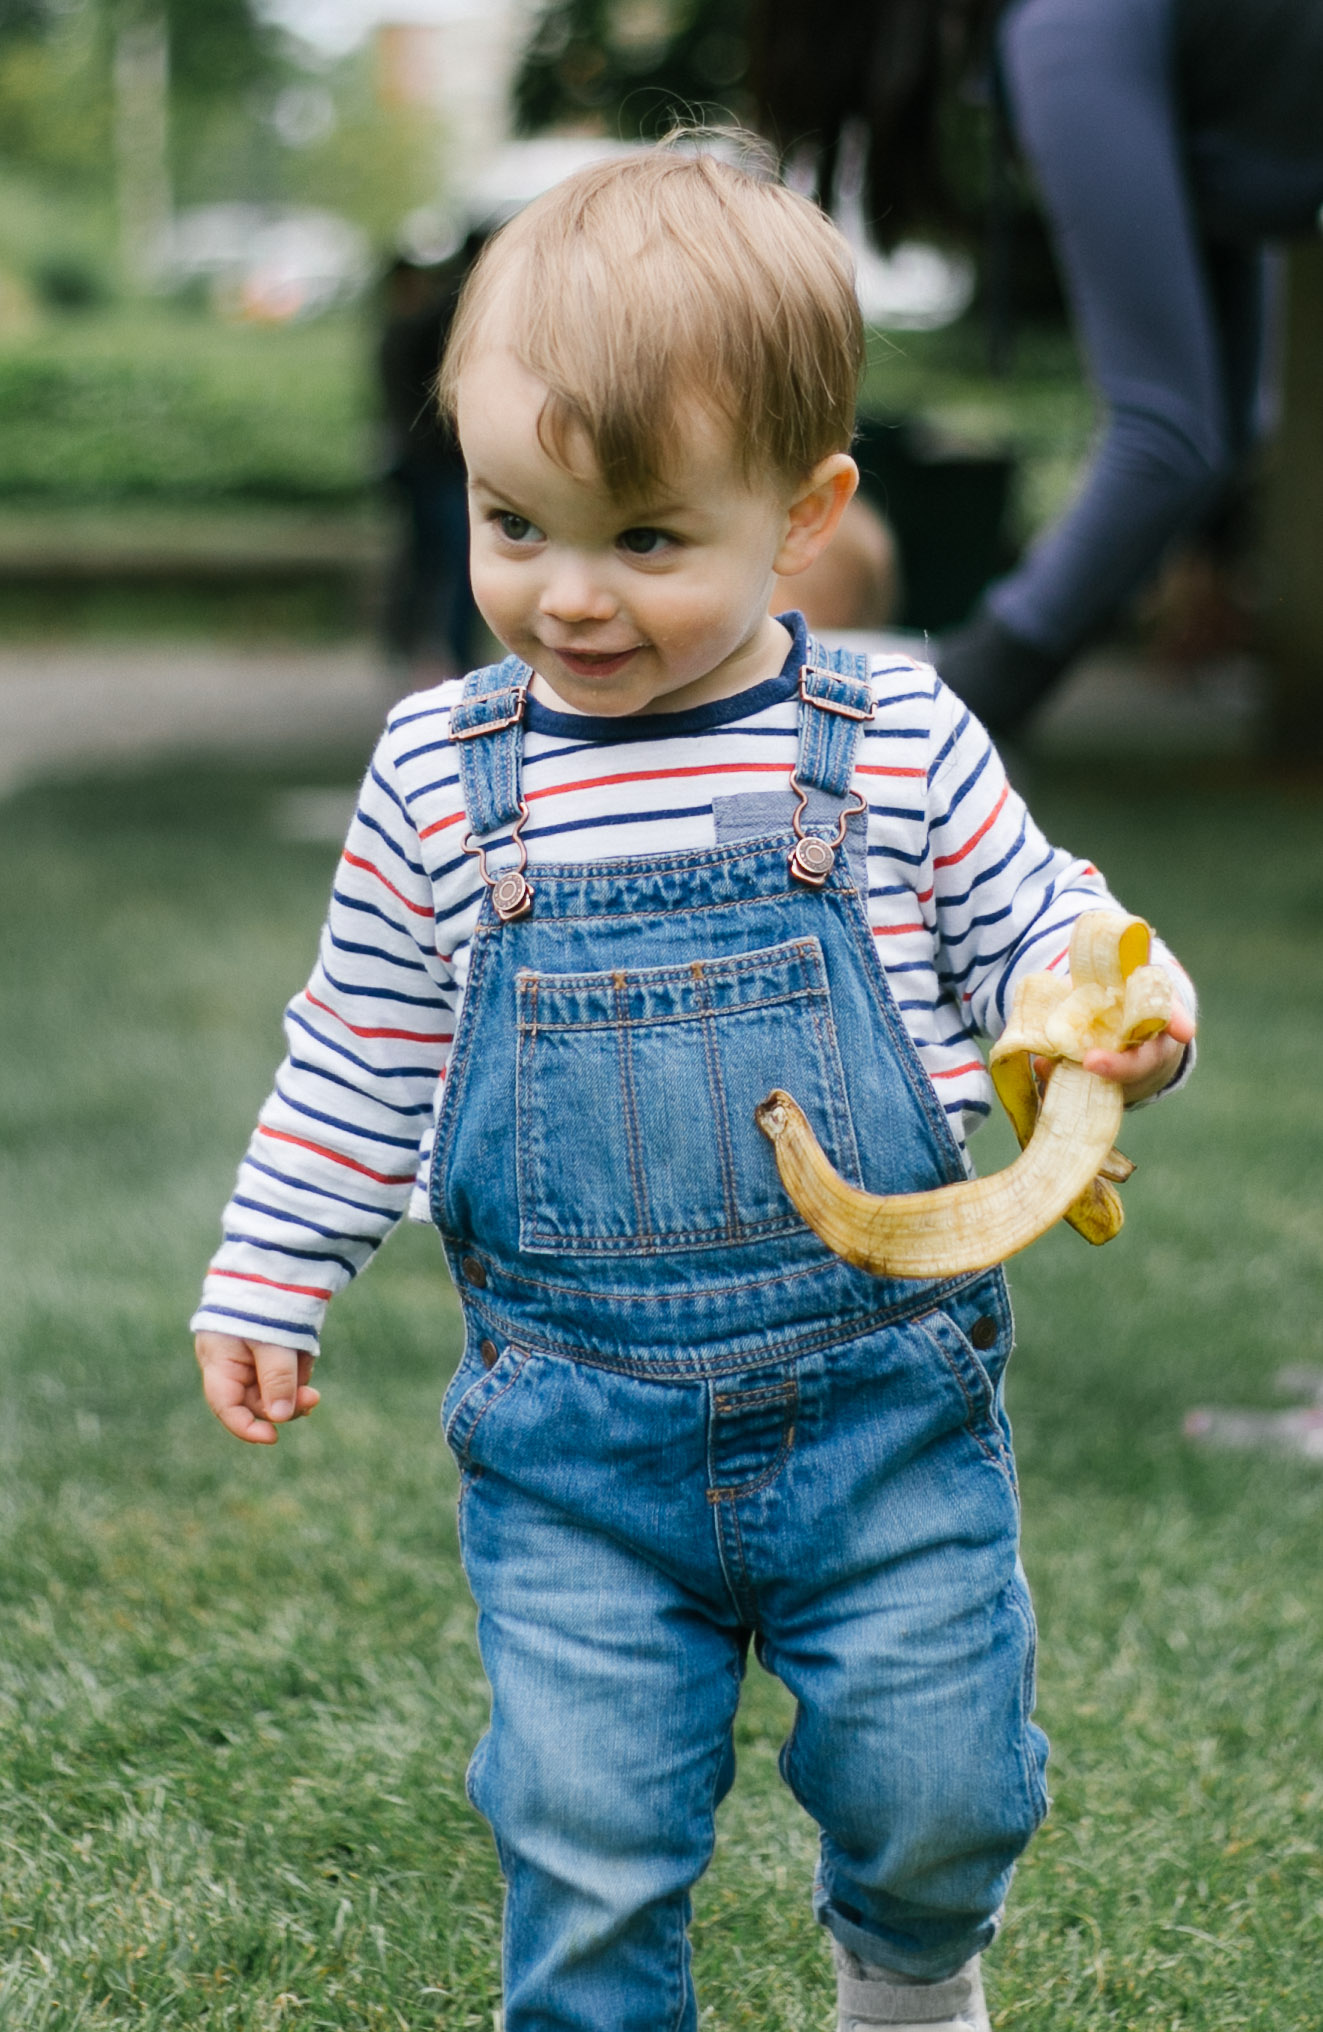 Fine art portraits of my child at the Redmond Farmer Market | Chelsea Macor Photography Seattle and Bellevue Family Photography-6.jpg